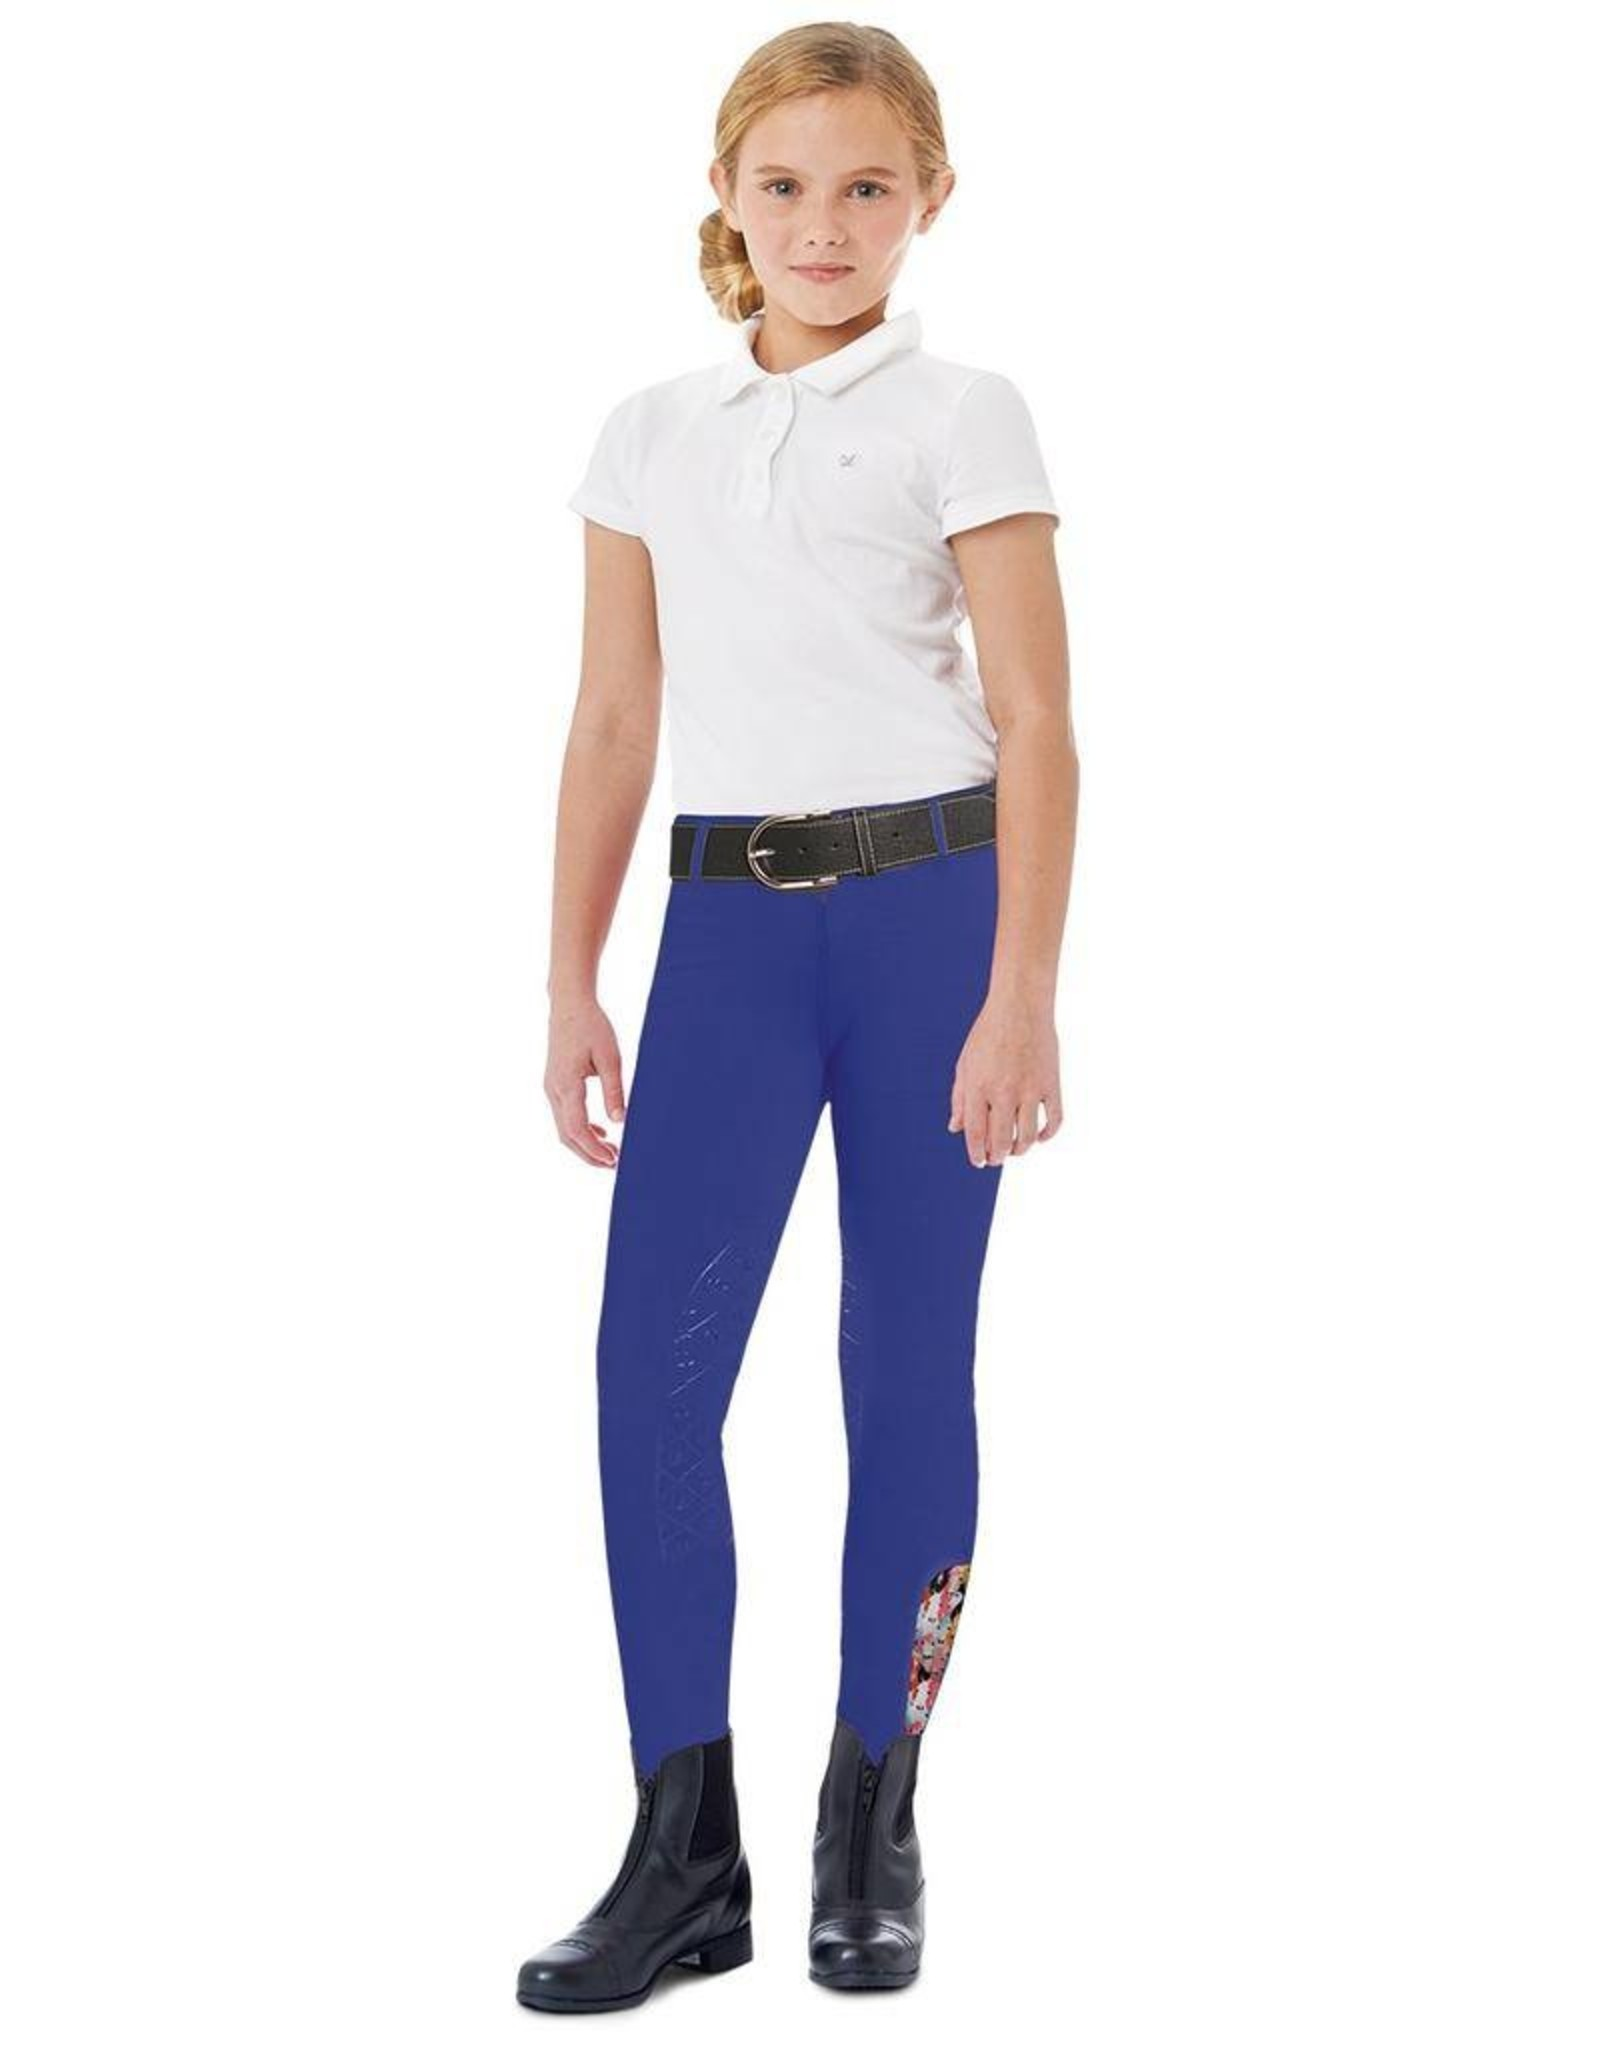 Ovation Kids' AeroWick Silicone Knee Patch Tights